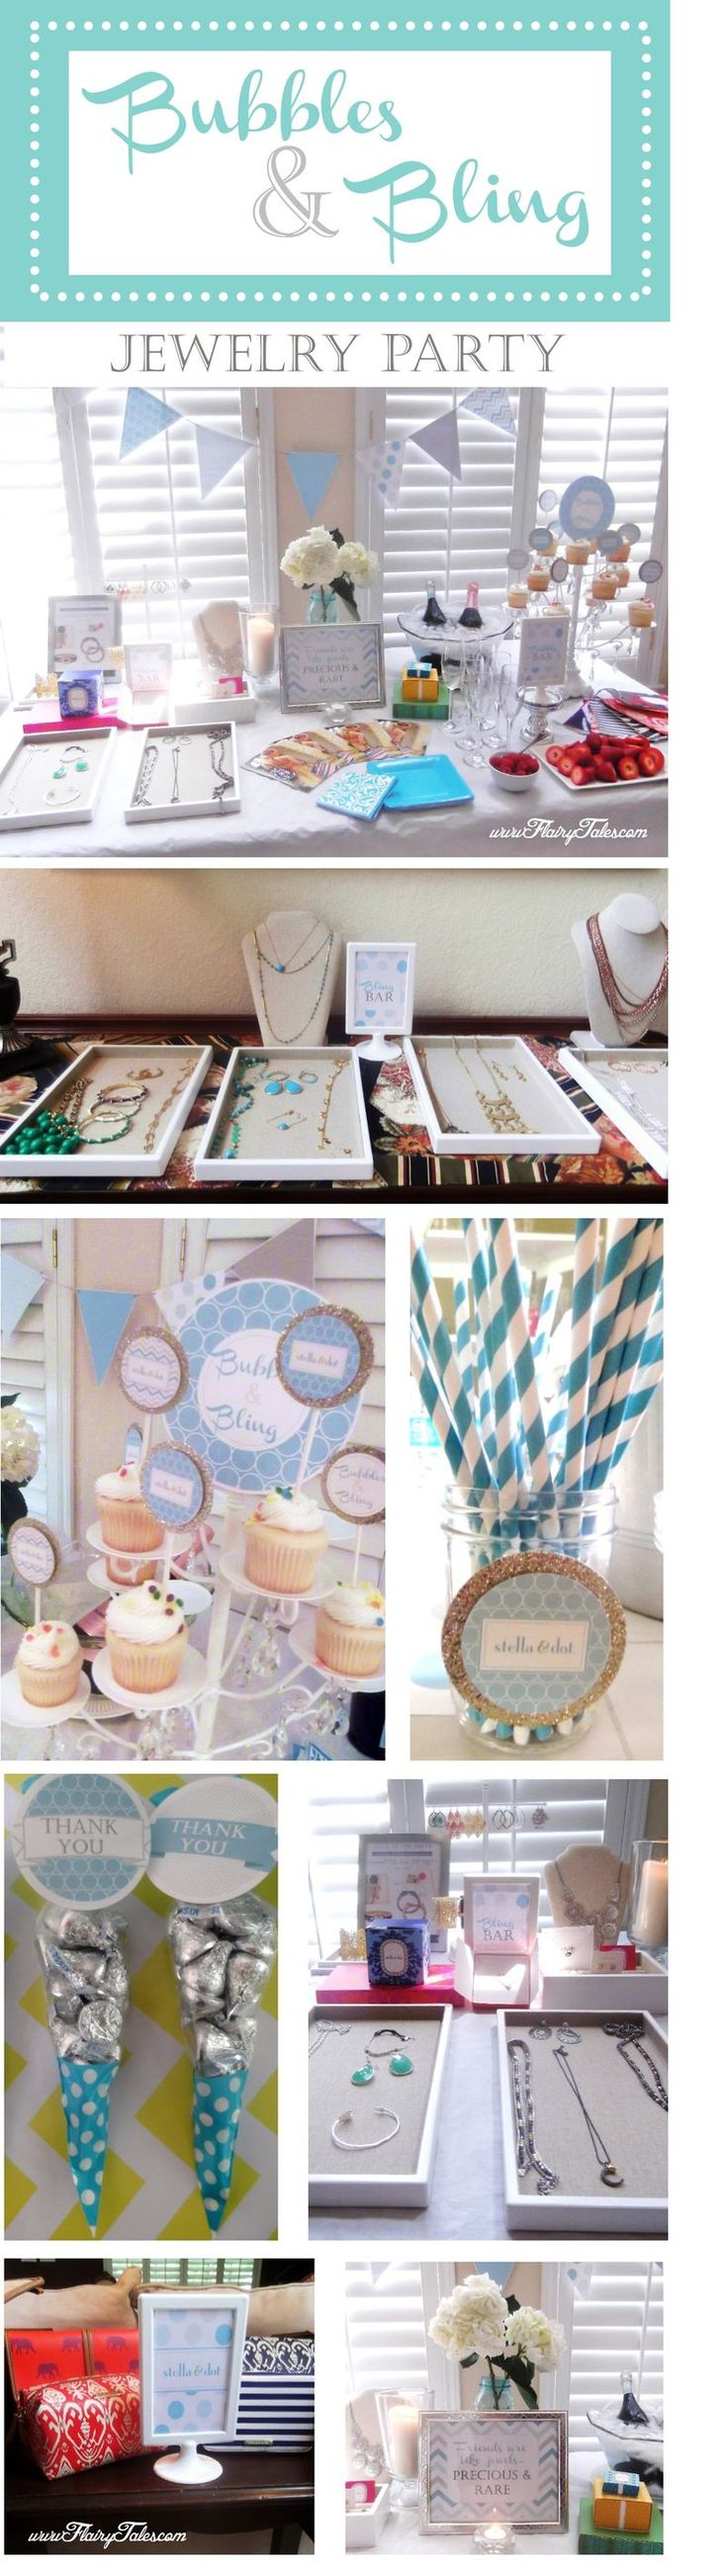 Ideas for hosting a Bubbles & Bling jewelry party.  This one features Stella & Dot accessories...so fun!  www.flairytales.com